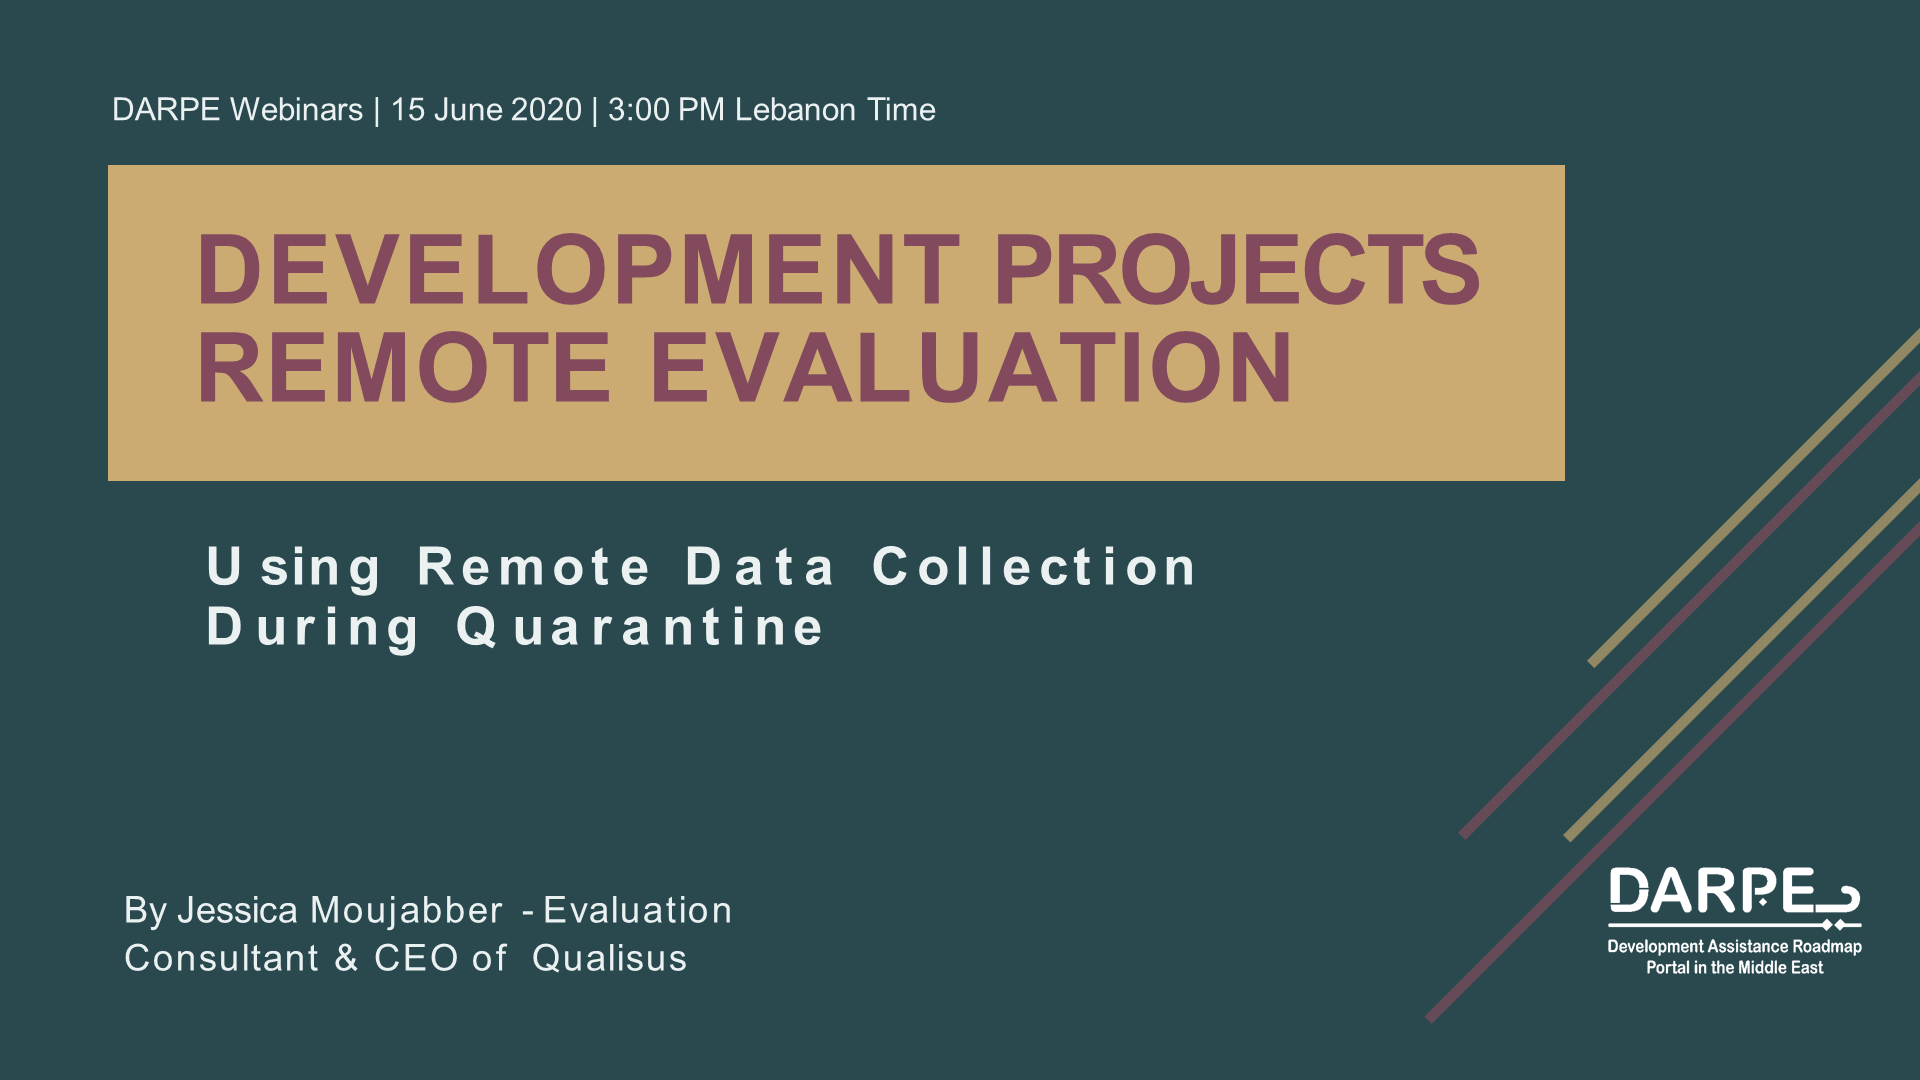 Development Projects Remote Evaluation